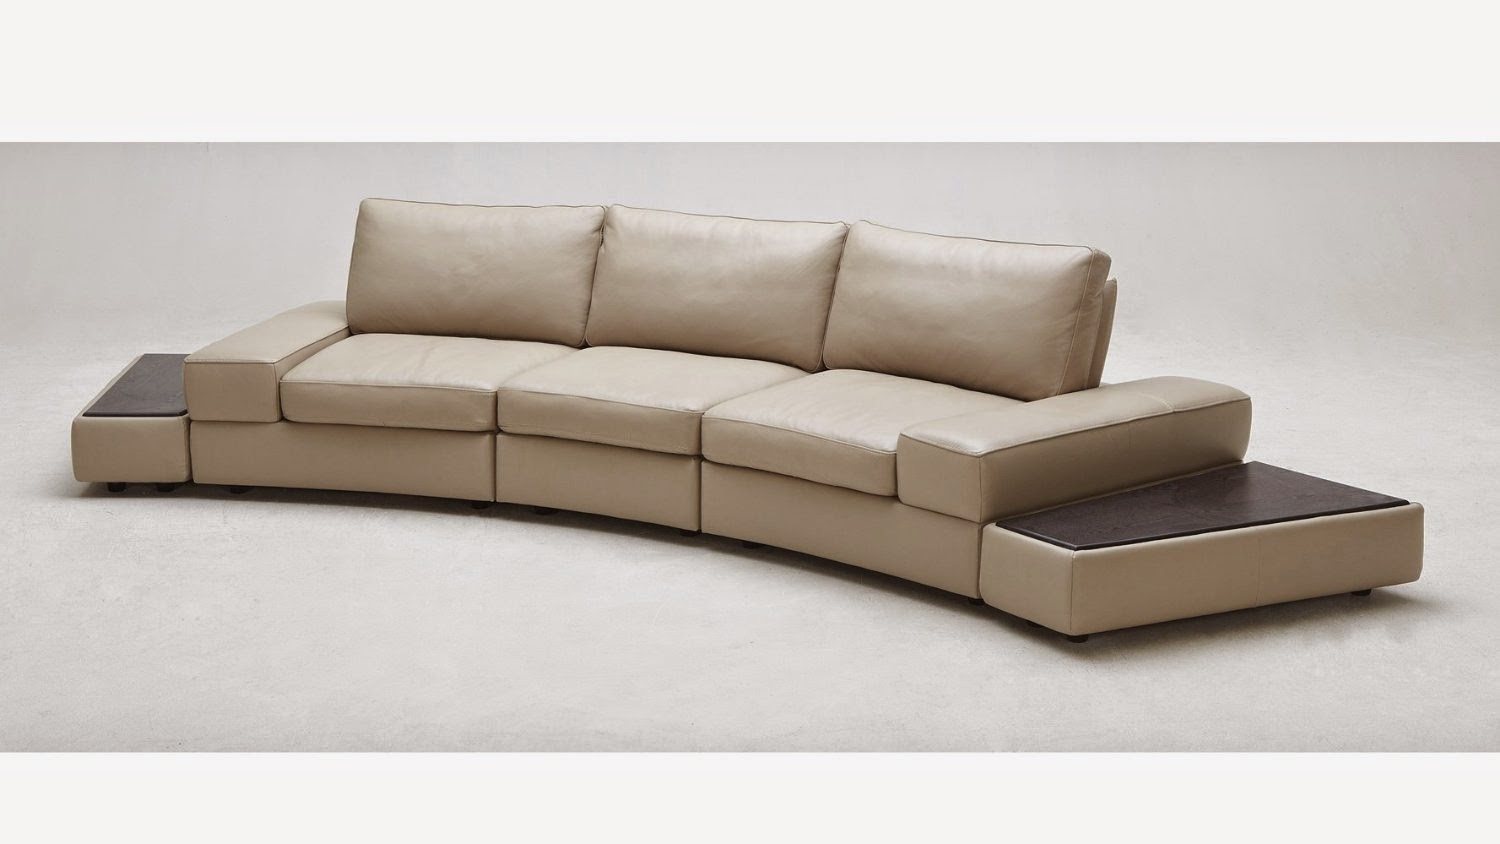 Curved sofa website reviews mid century modern curved for Mid century modern sofas